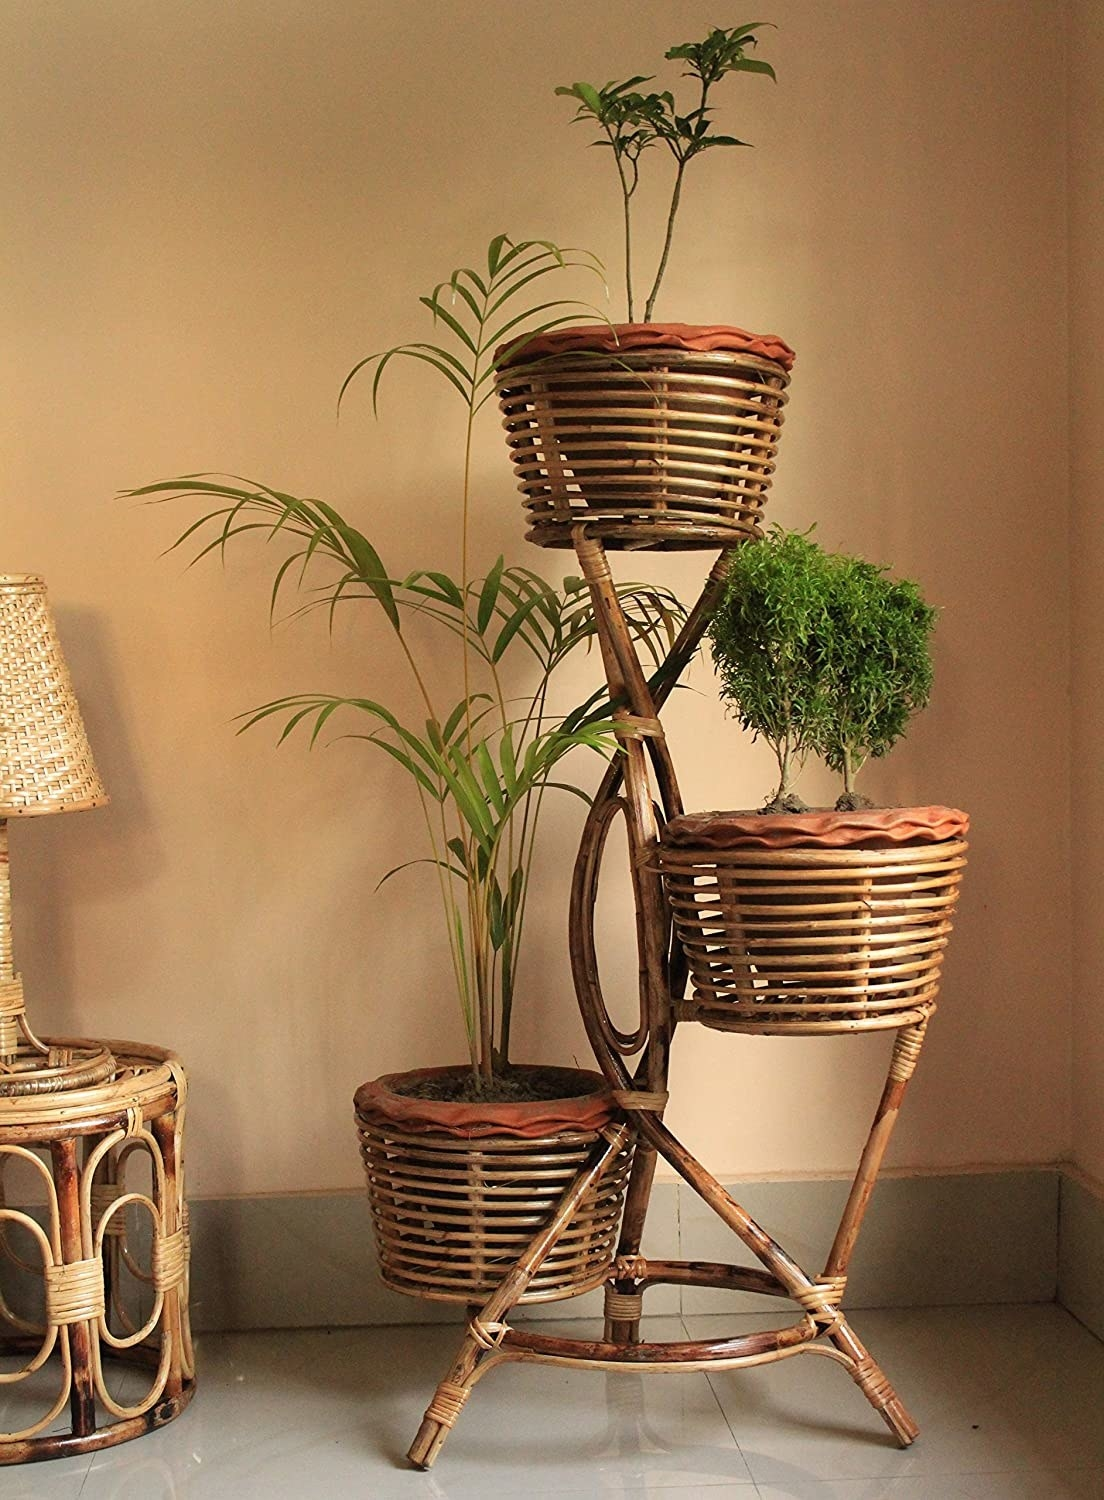 A cane planter stand holding 3 potted plants.